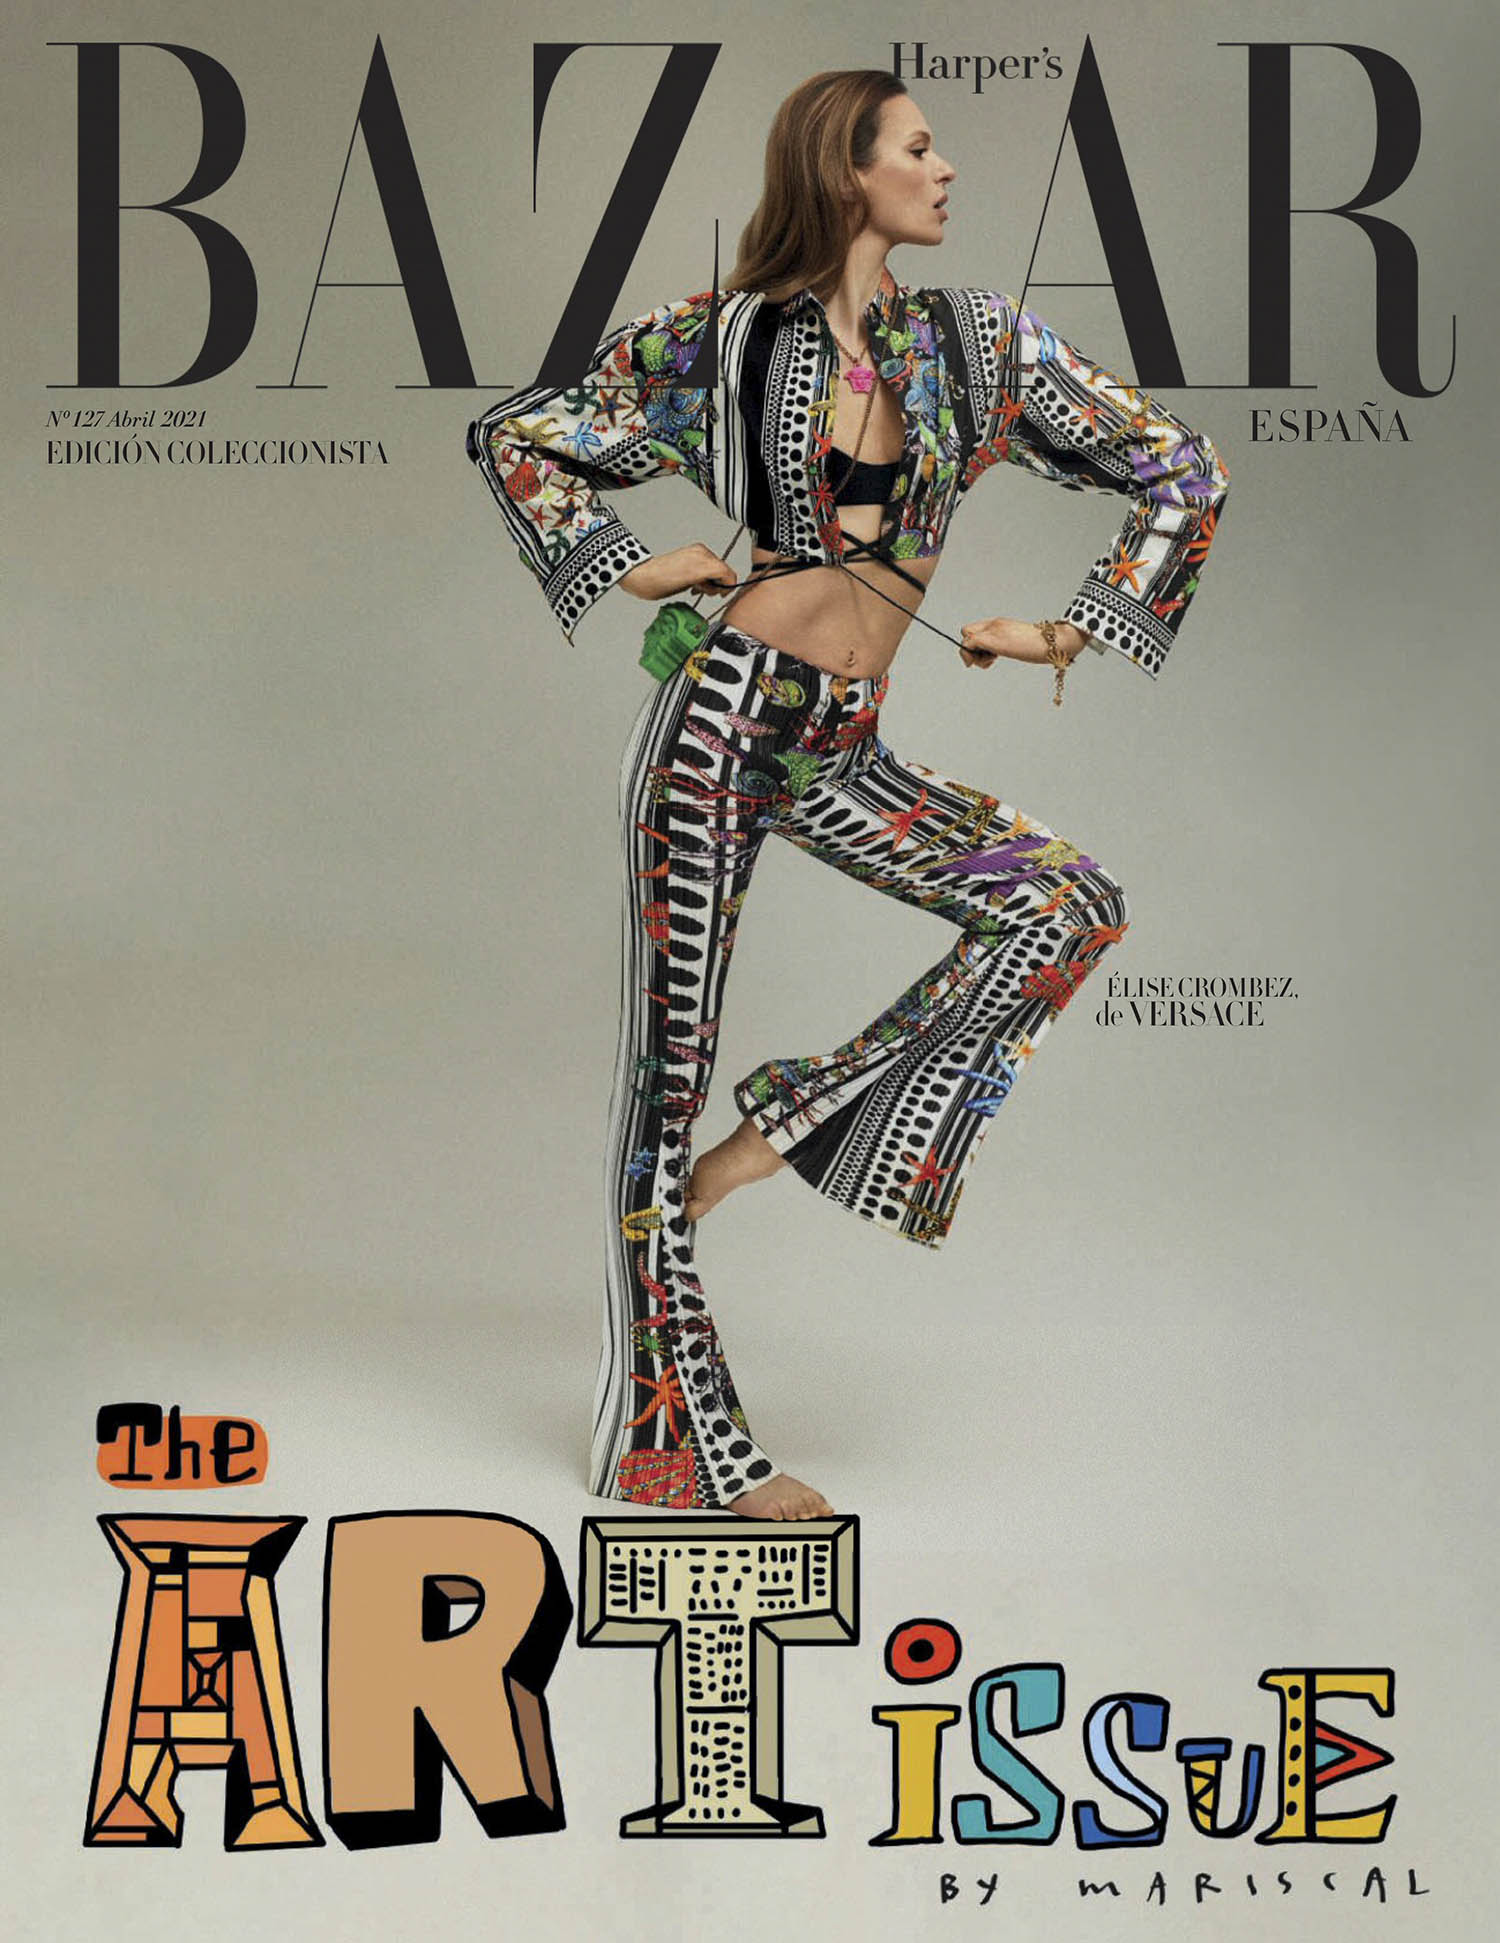 Élise Crombez covers Harper's Bazaar Spain April 2021 by Xavi Gordo